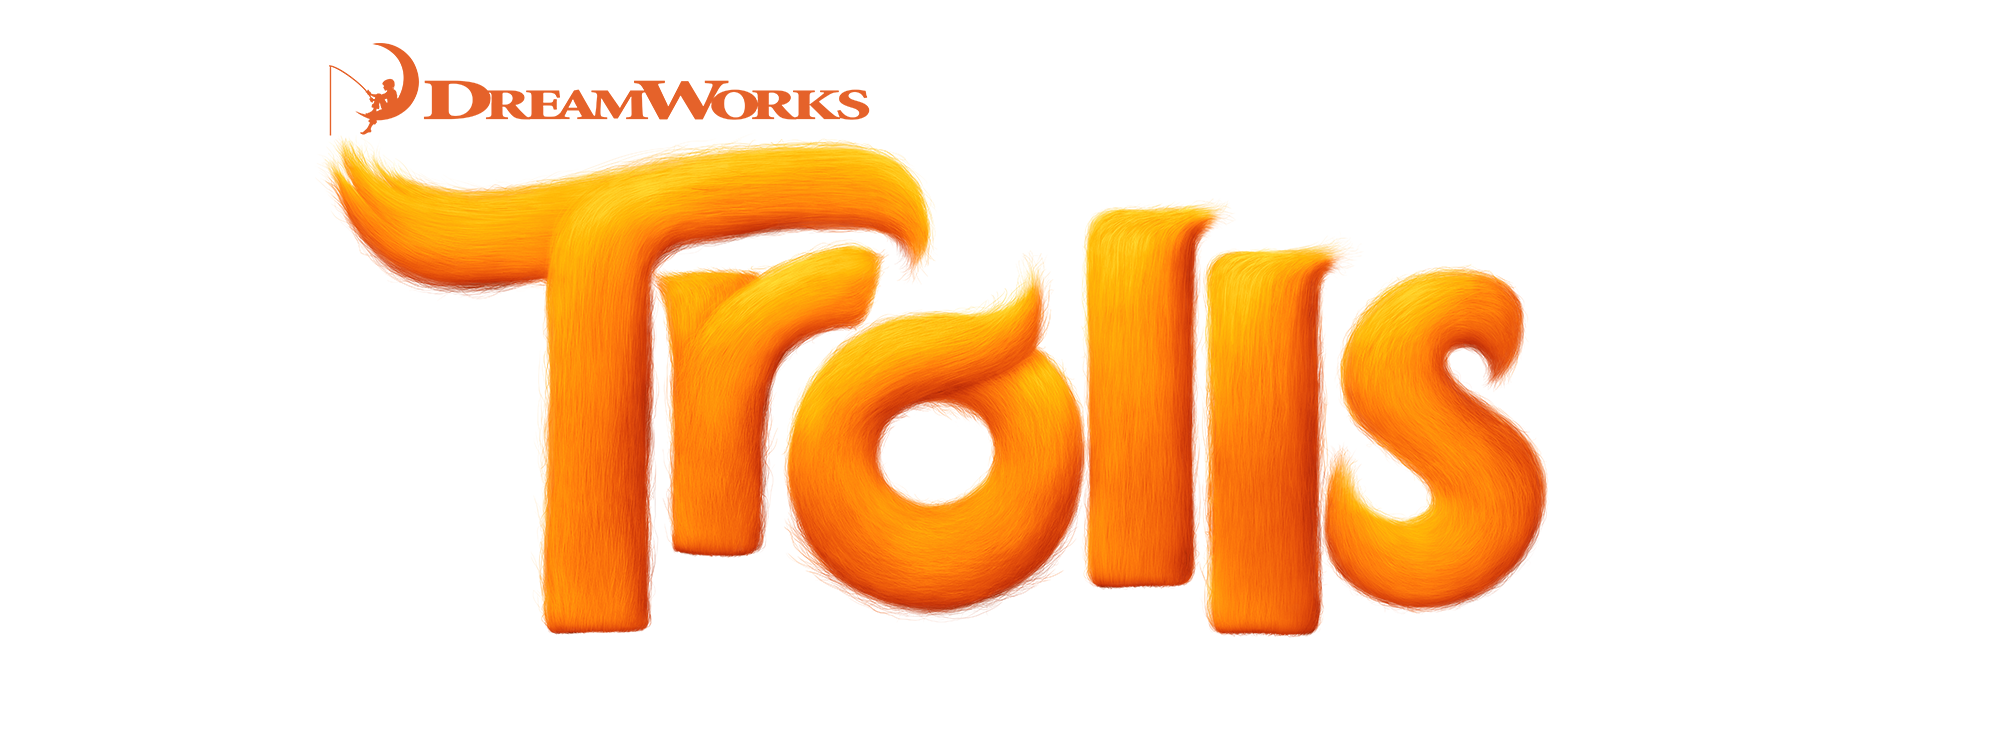 Meet The Cast Behind Dreamworks Trolls Rotoscopers